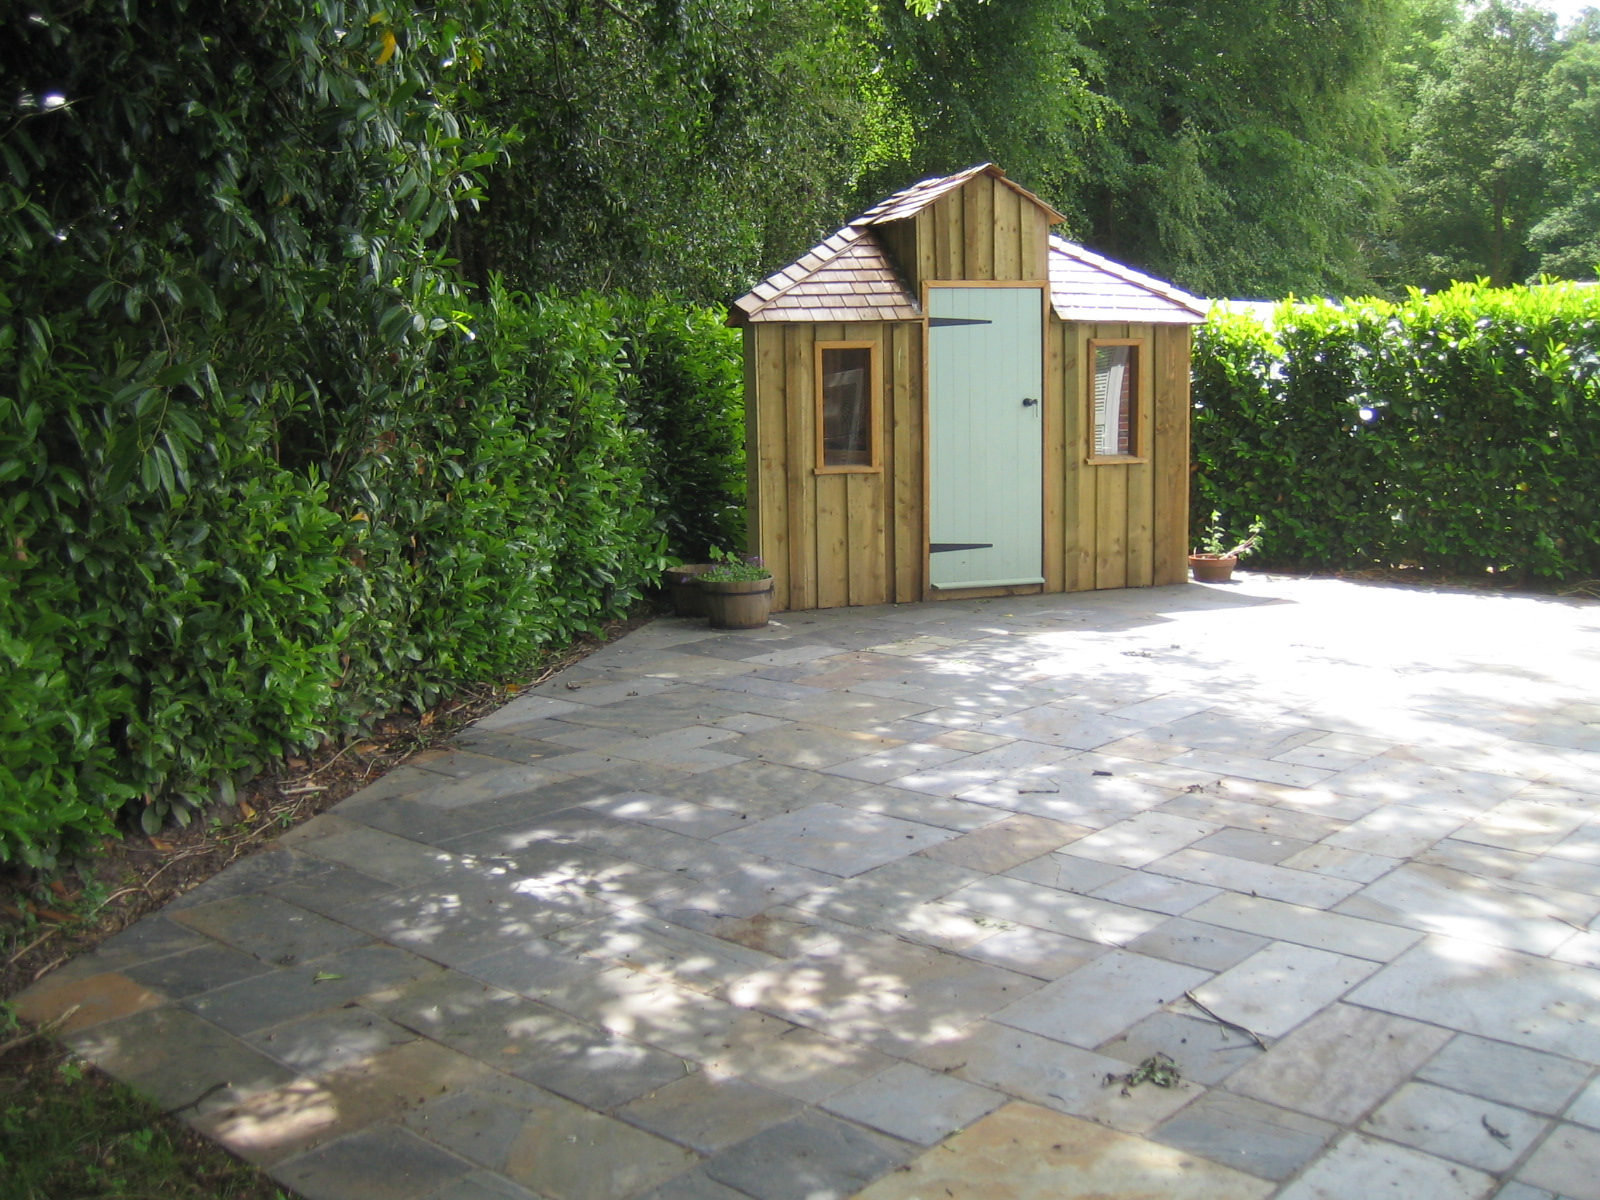 Patio and Shed Image